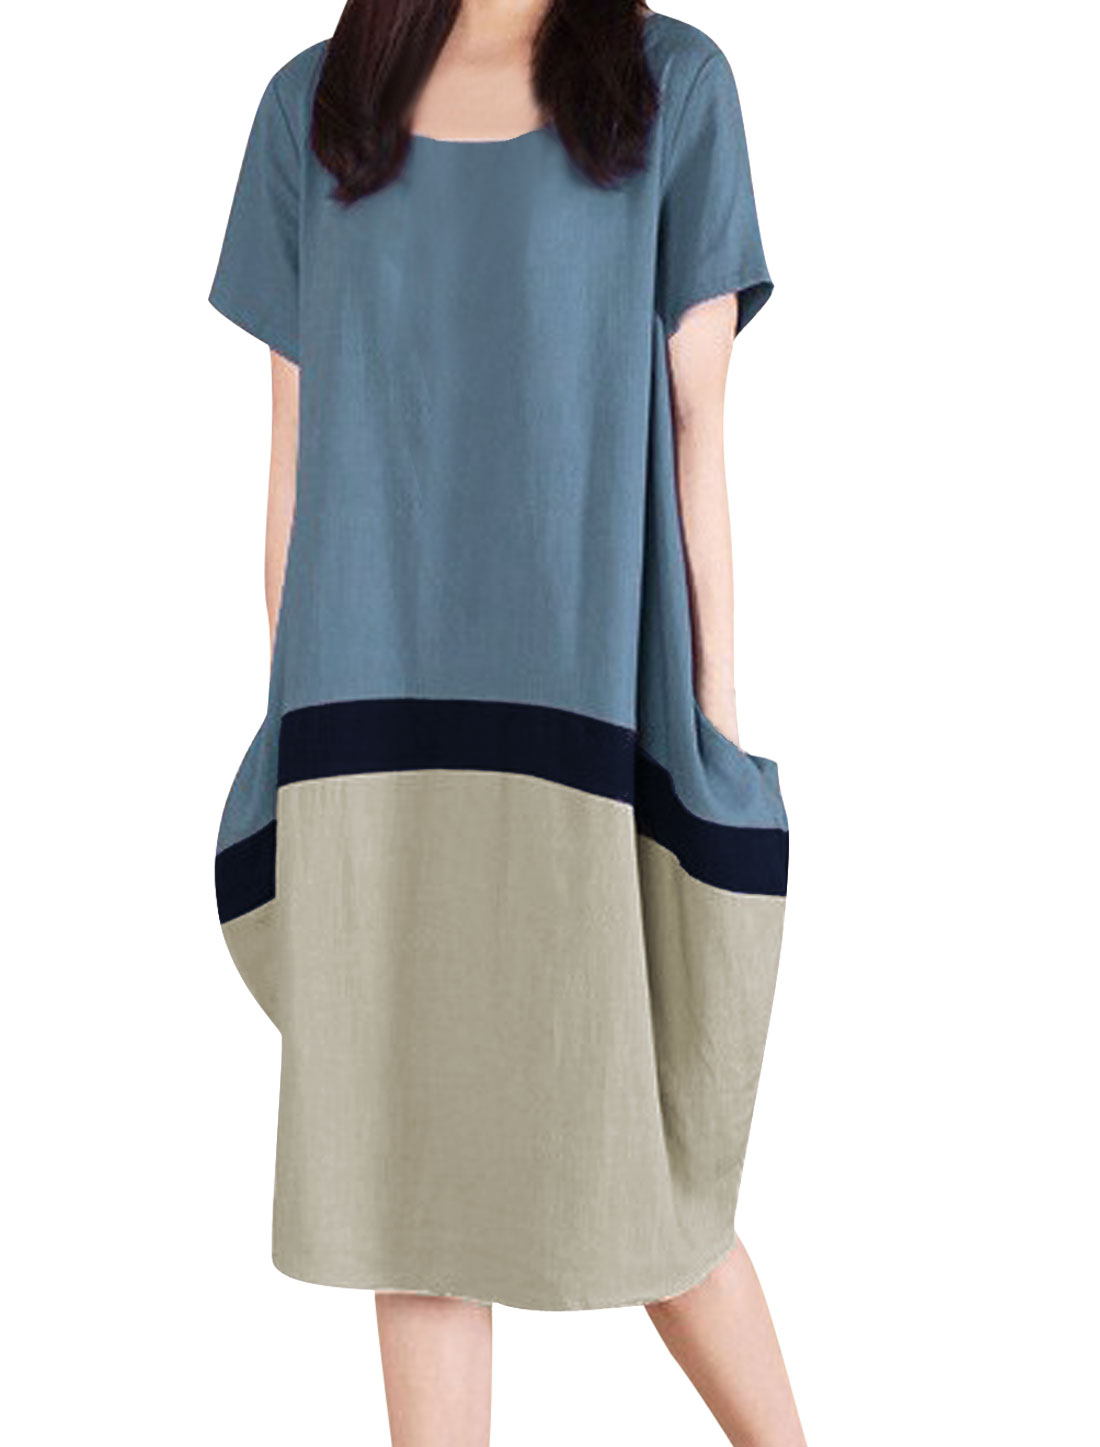 Lady Short Sleeve Colorblock Knee-Length Linen Dress Dark Teal XS